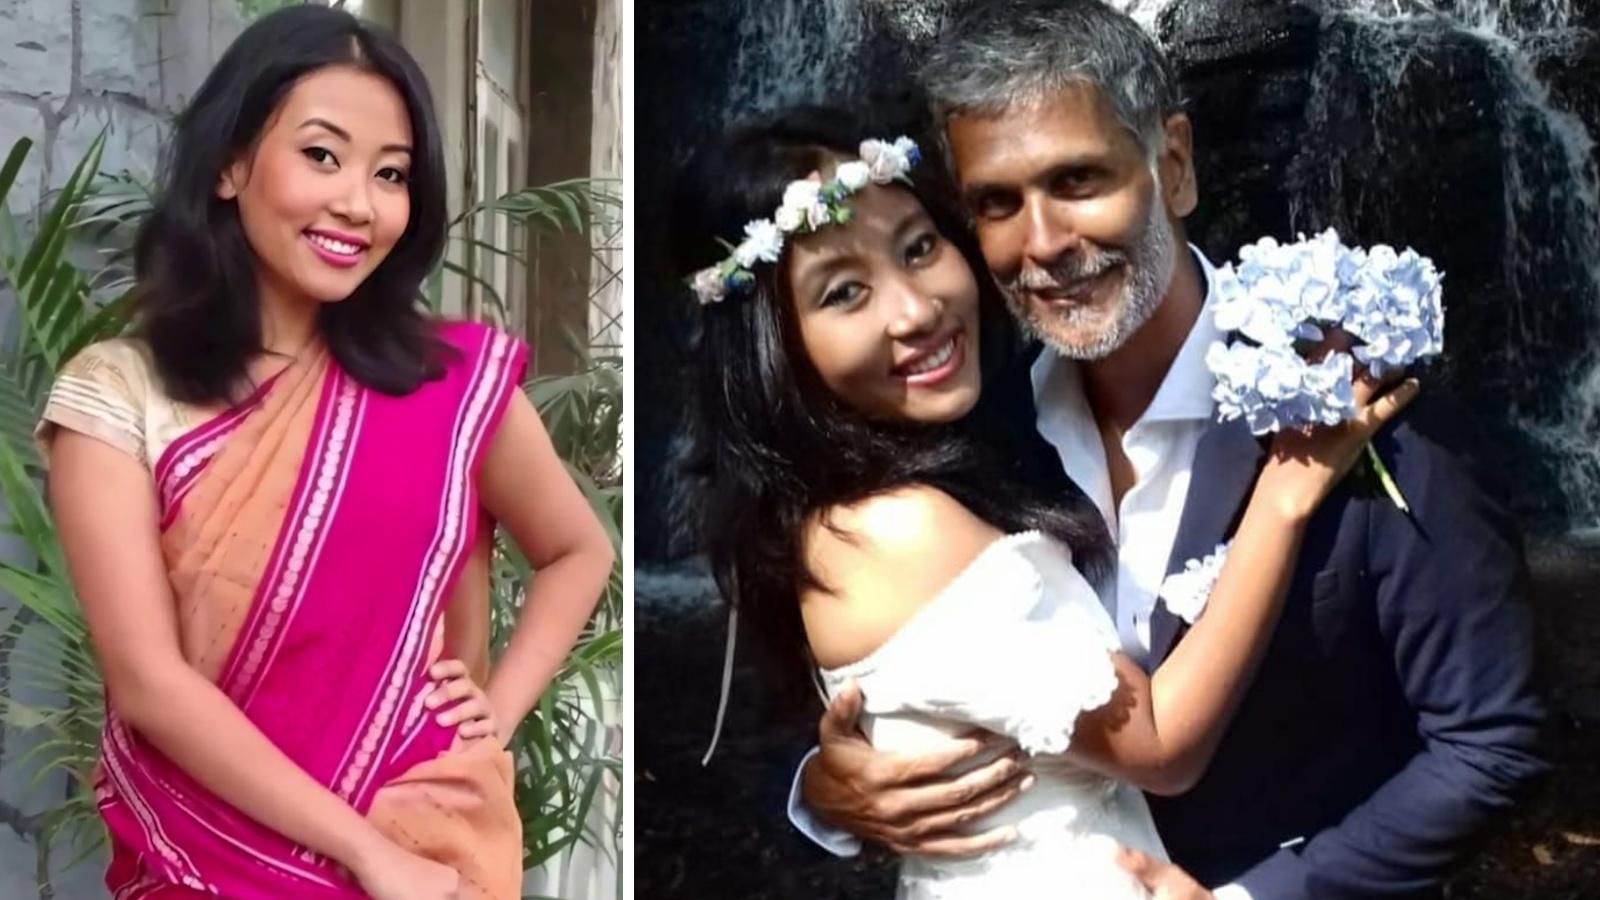 Milind Soman's wife Ankita Konwar on marrying an older man: 'We have tendency to get weird about the unknown, unexpected' | Hindi Movie News – Bollywood – Times of India